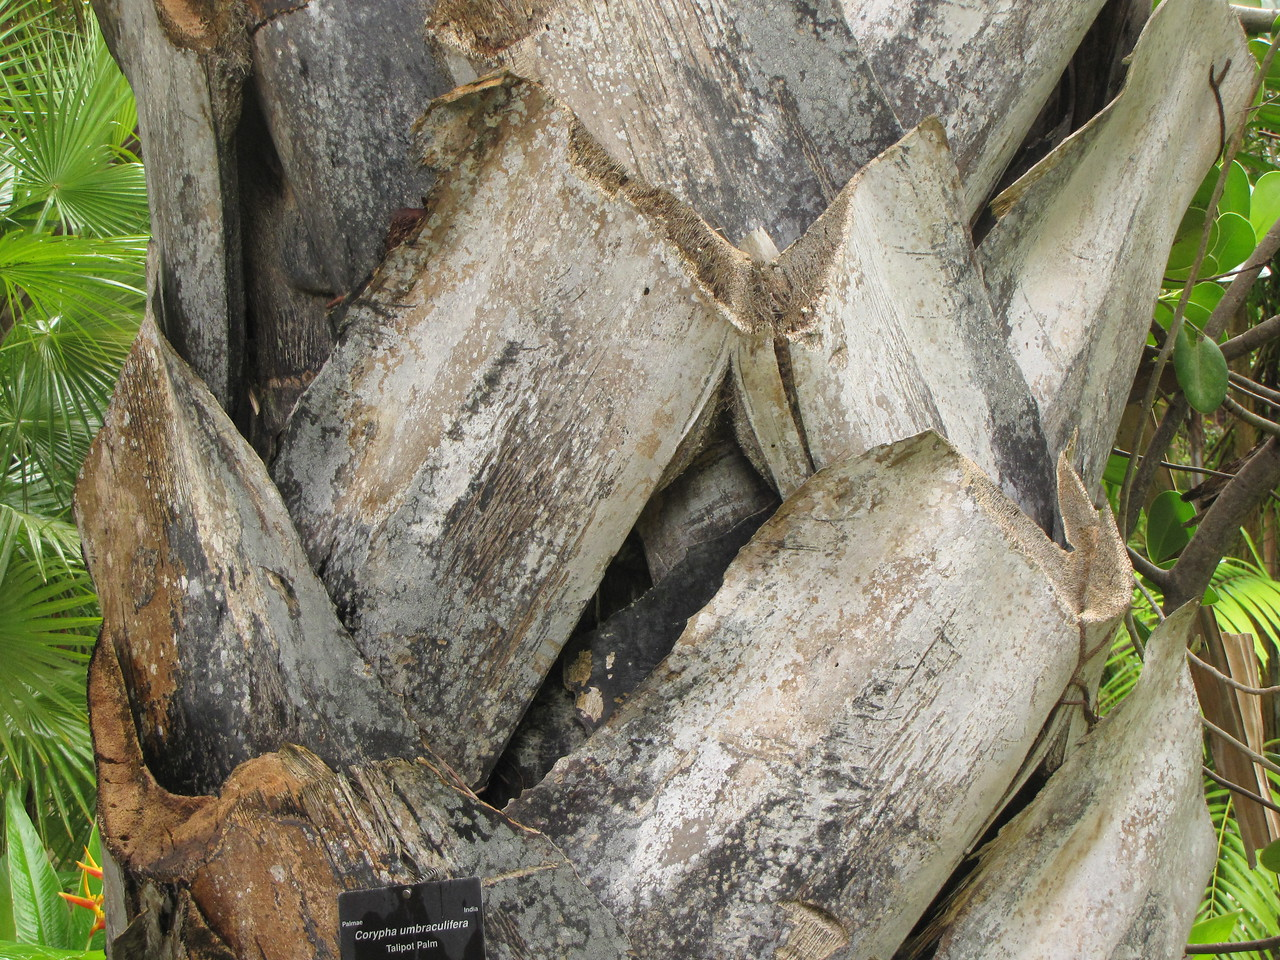 Close up of the trunk of the Talipot Palm.